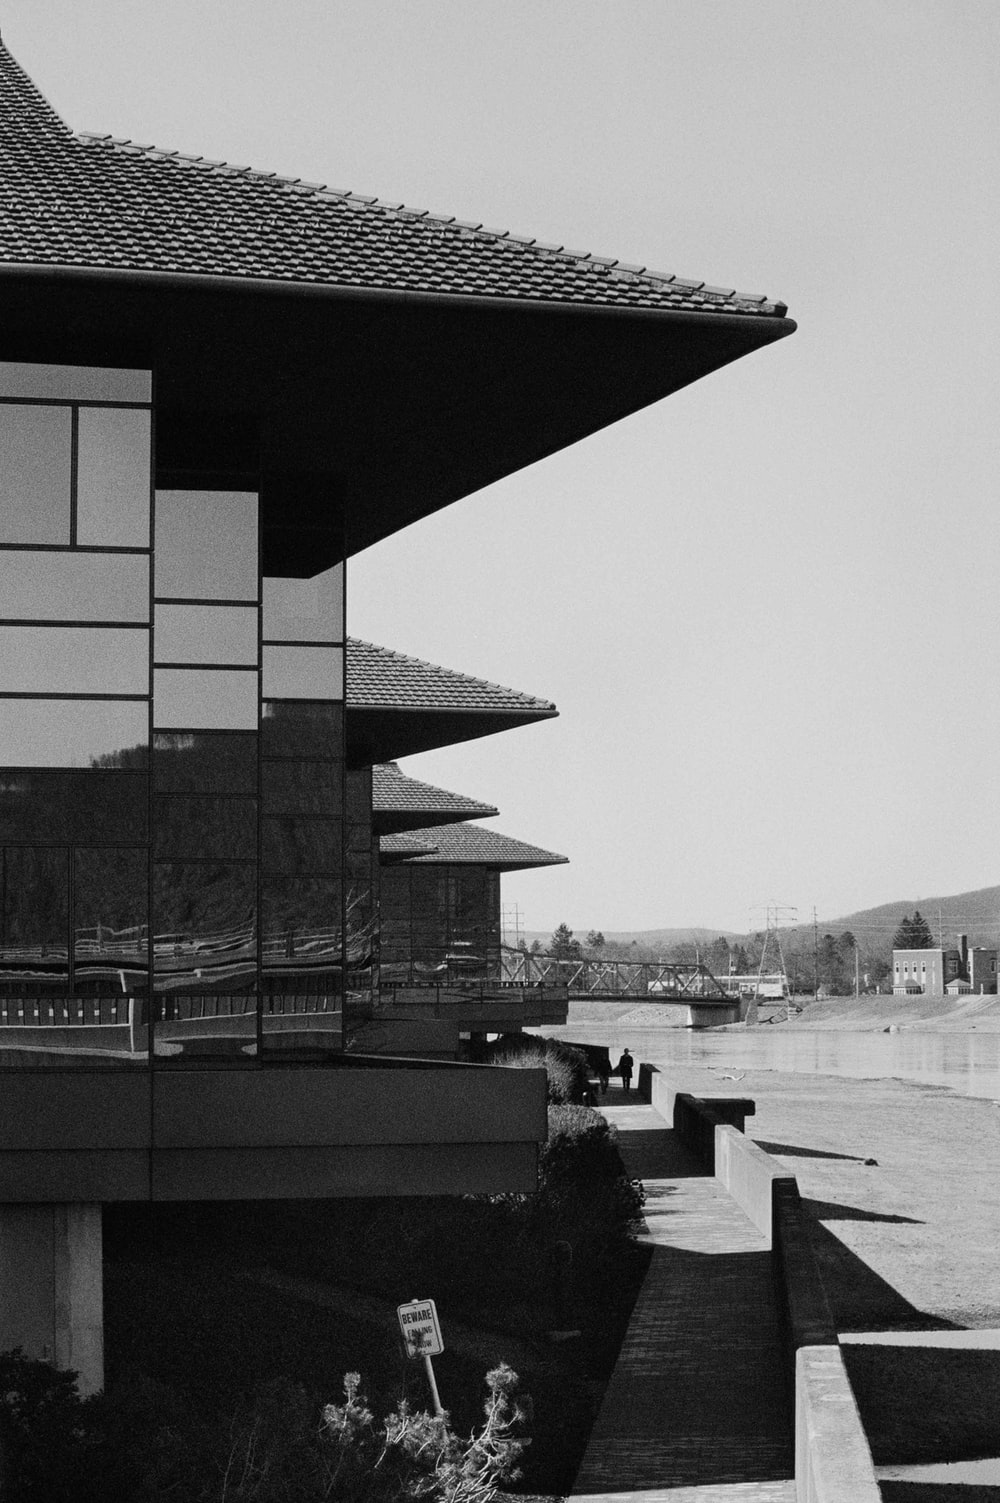 grayscale photo of building near body of water